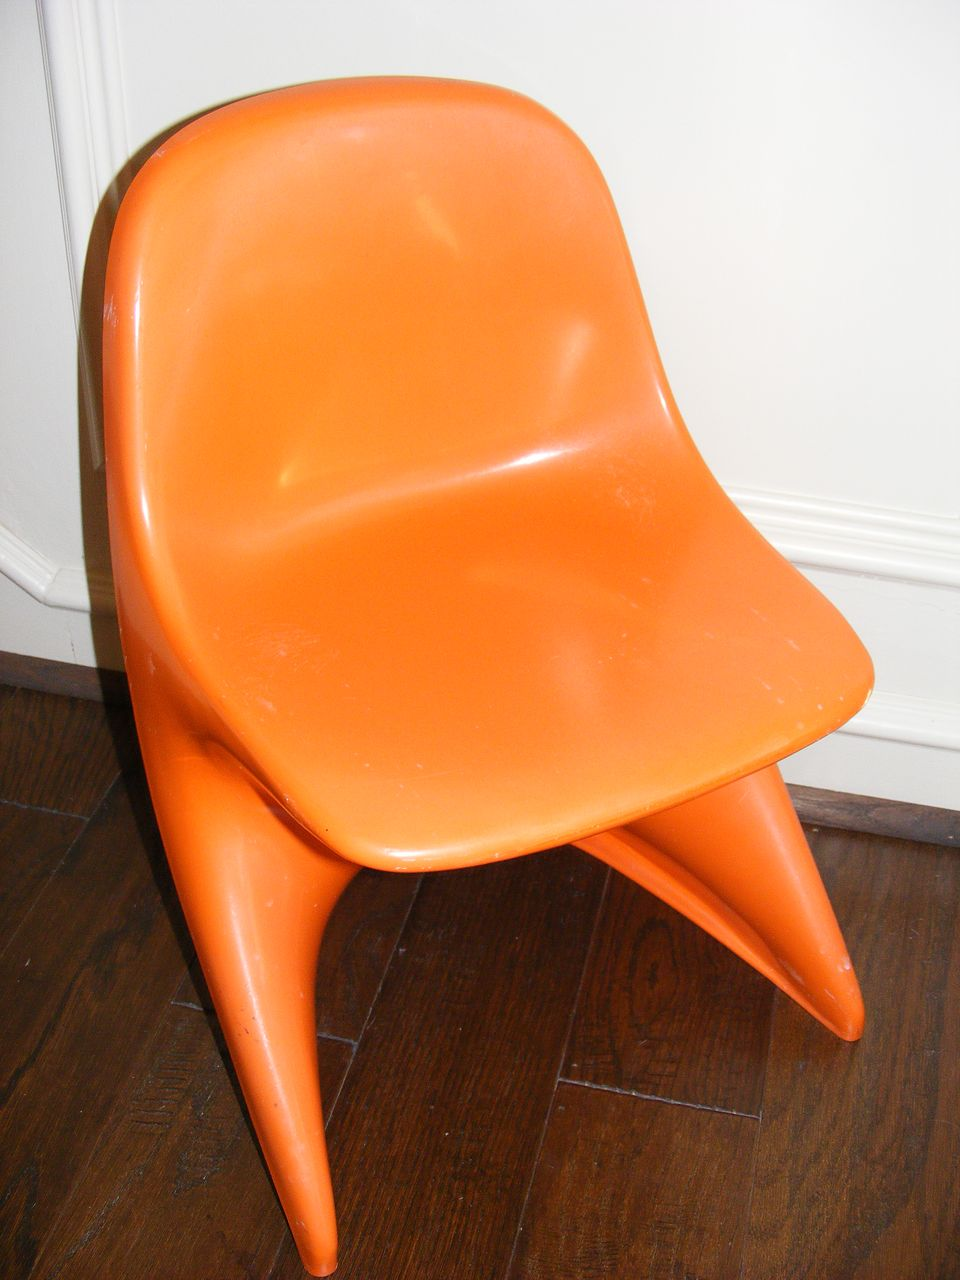 Vintage 1977 Casalino 0 Child's Chair - Orange